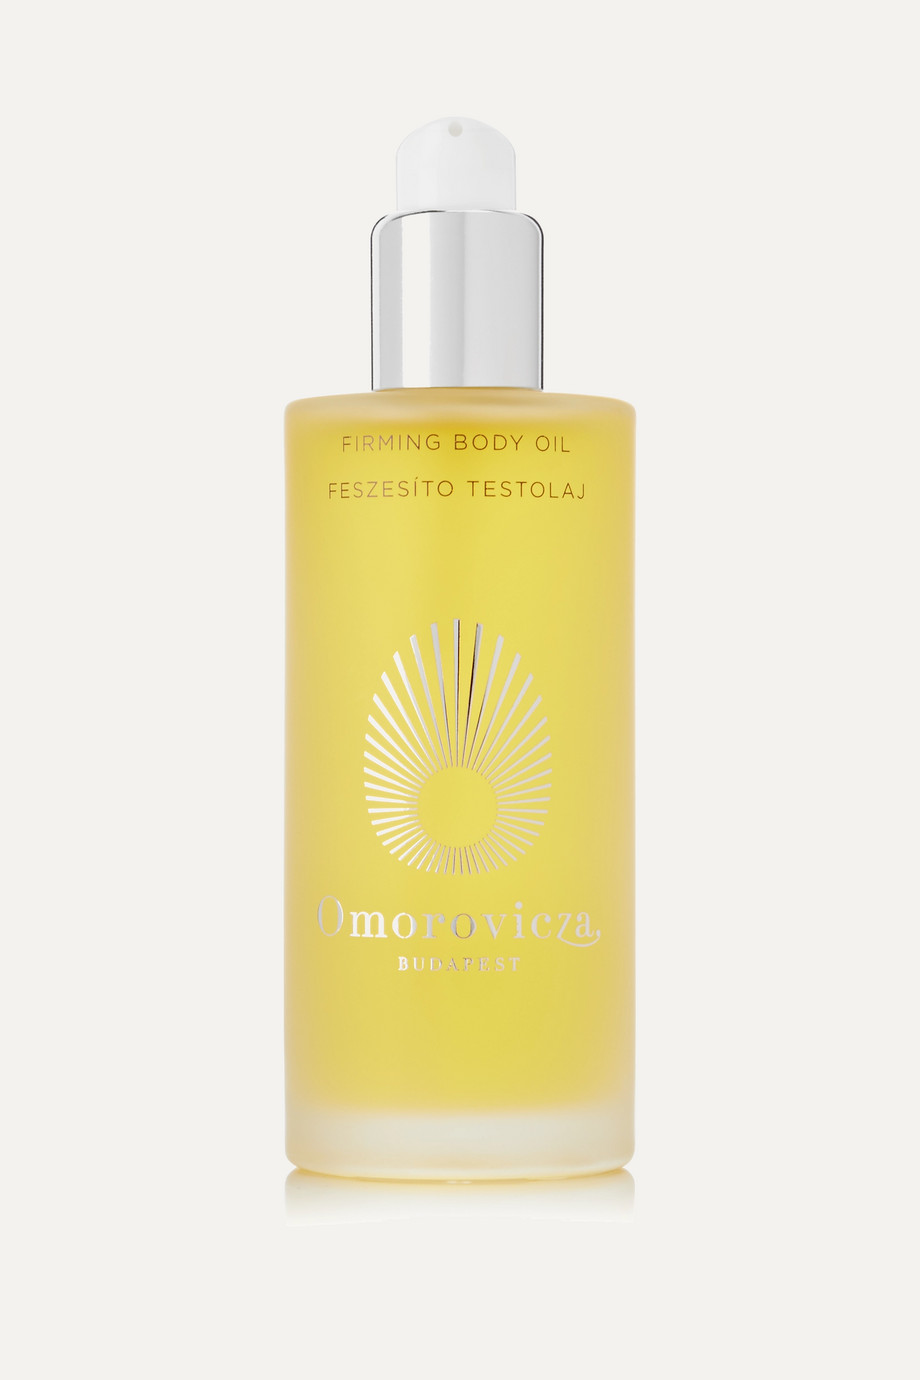 Omorovicza Firming Body Oil, 100ml